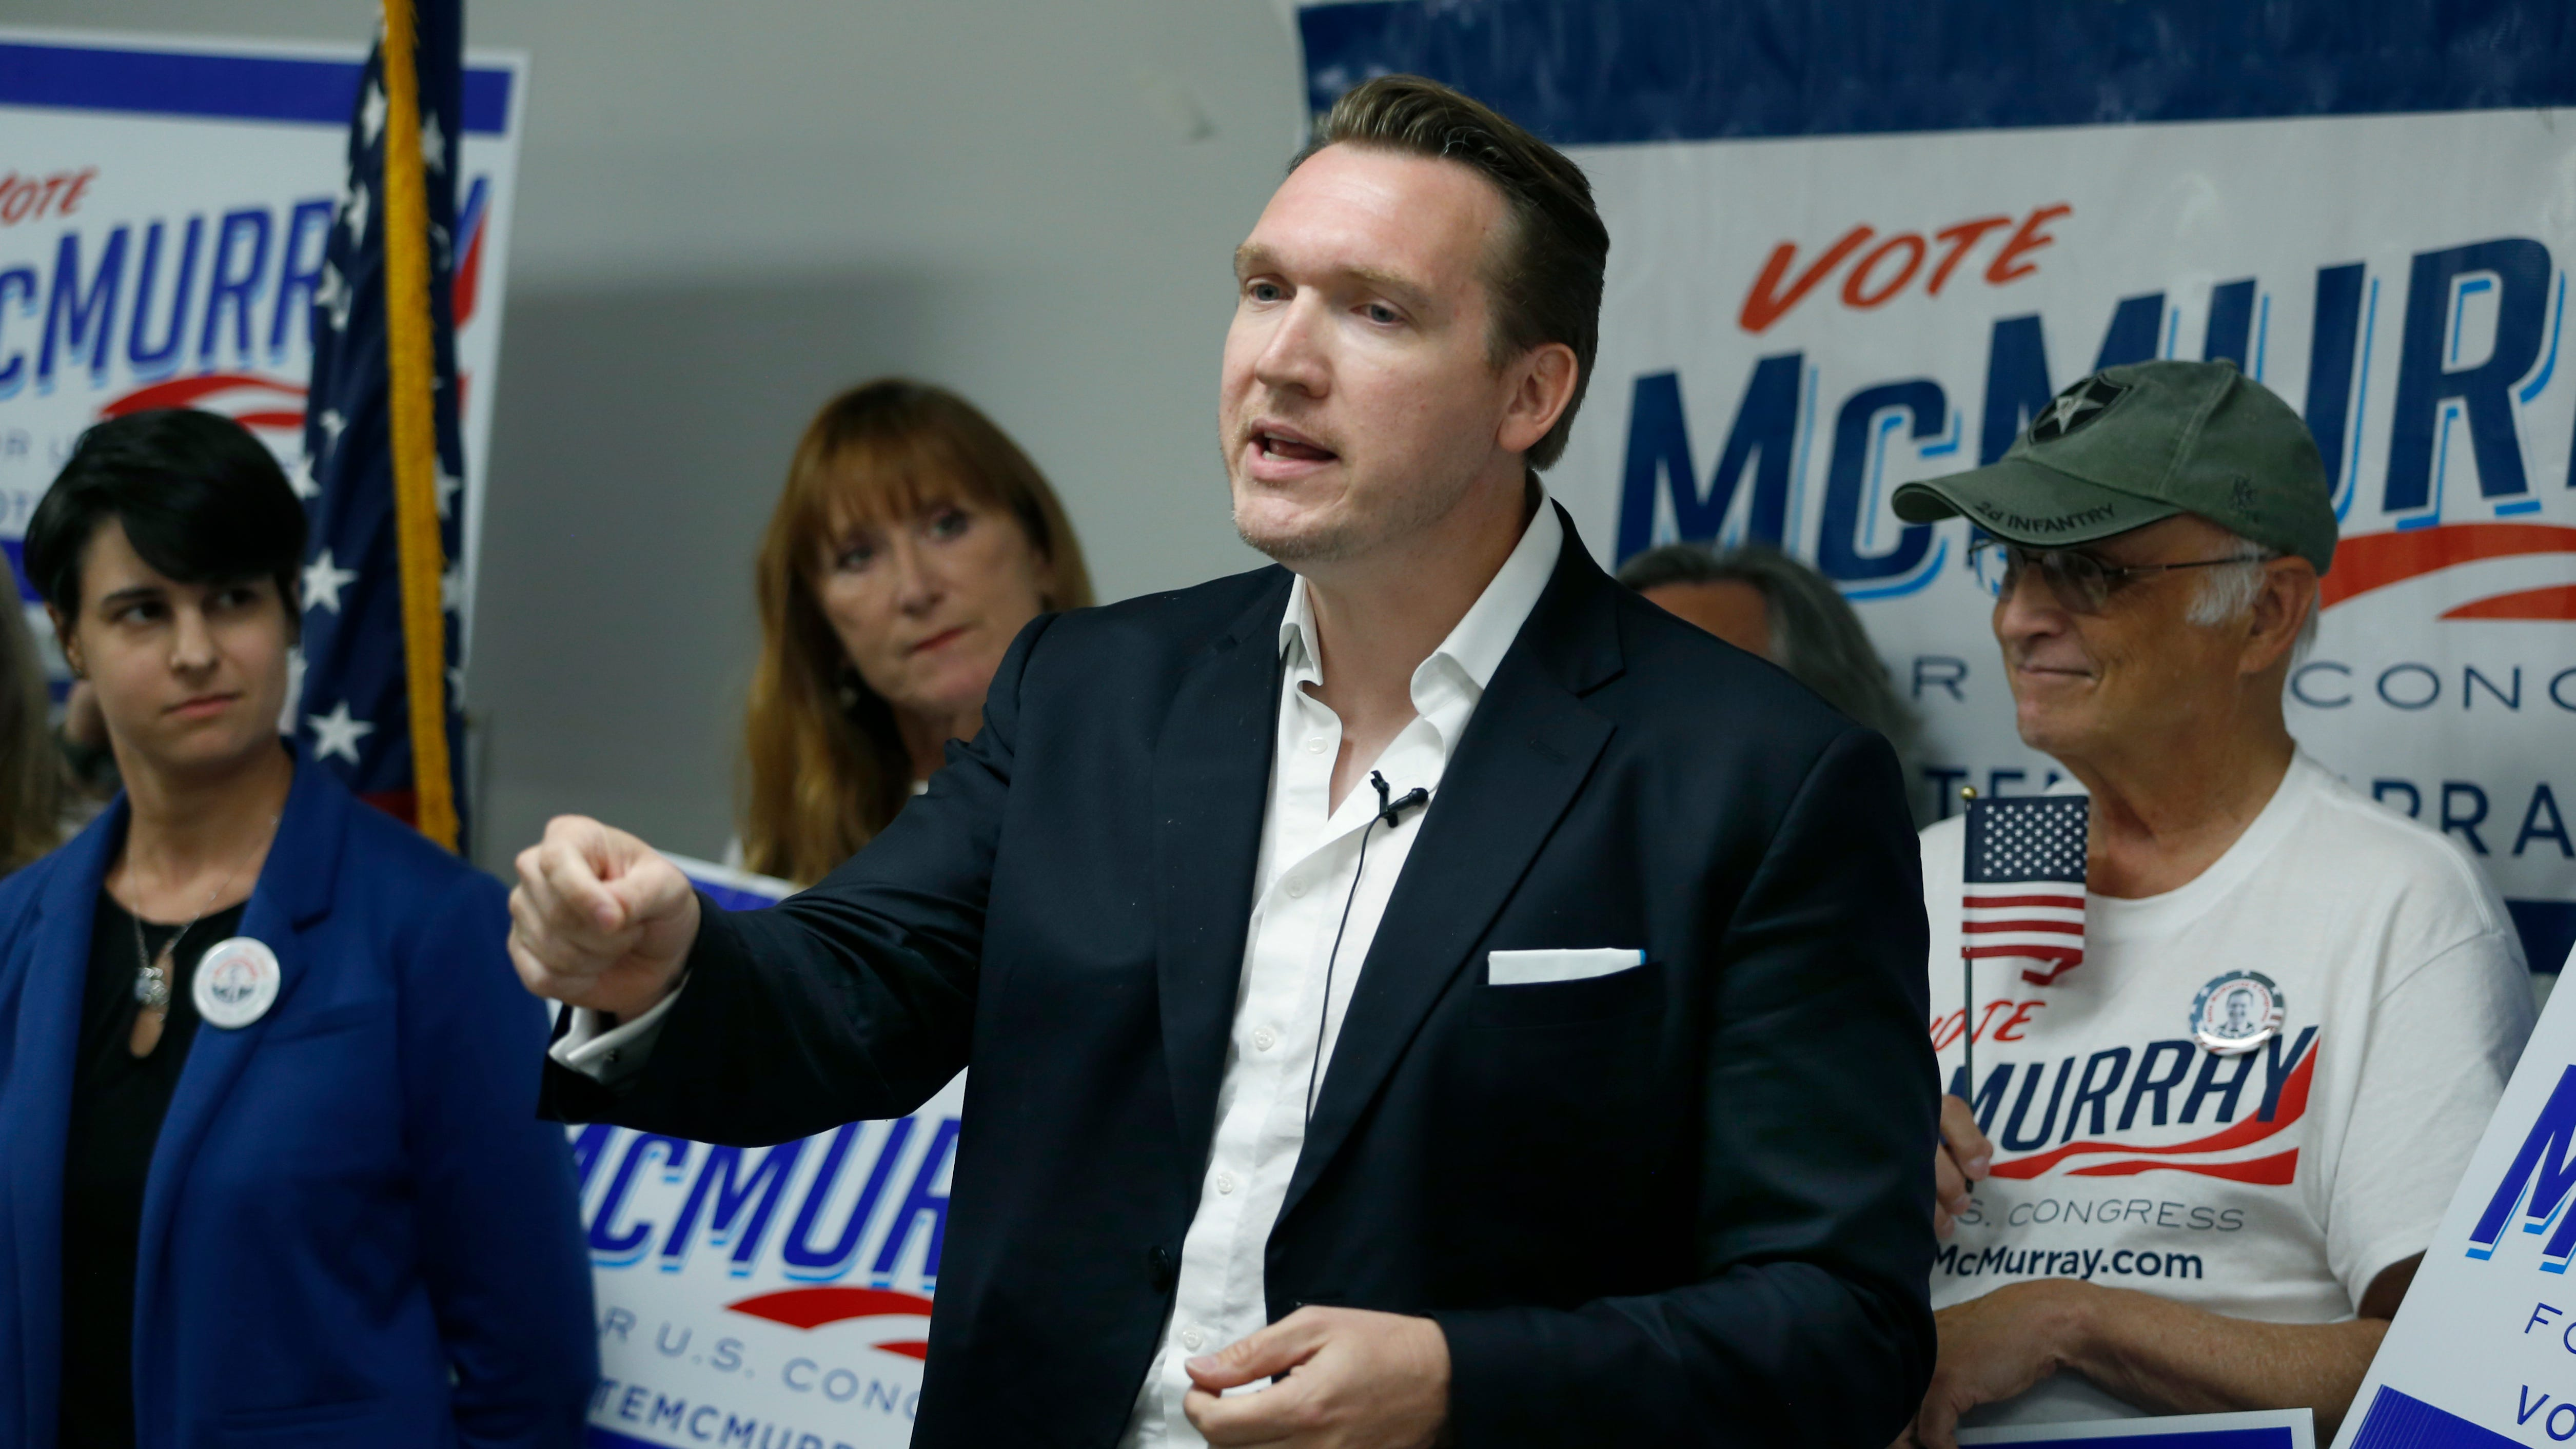 Collins vs. McMurray: What the latest poll shows in 27th House District